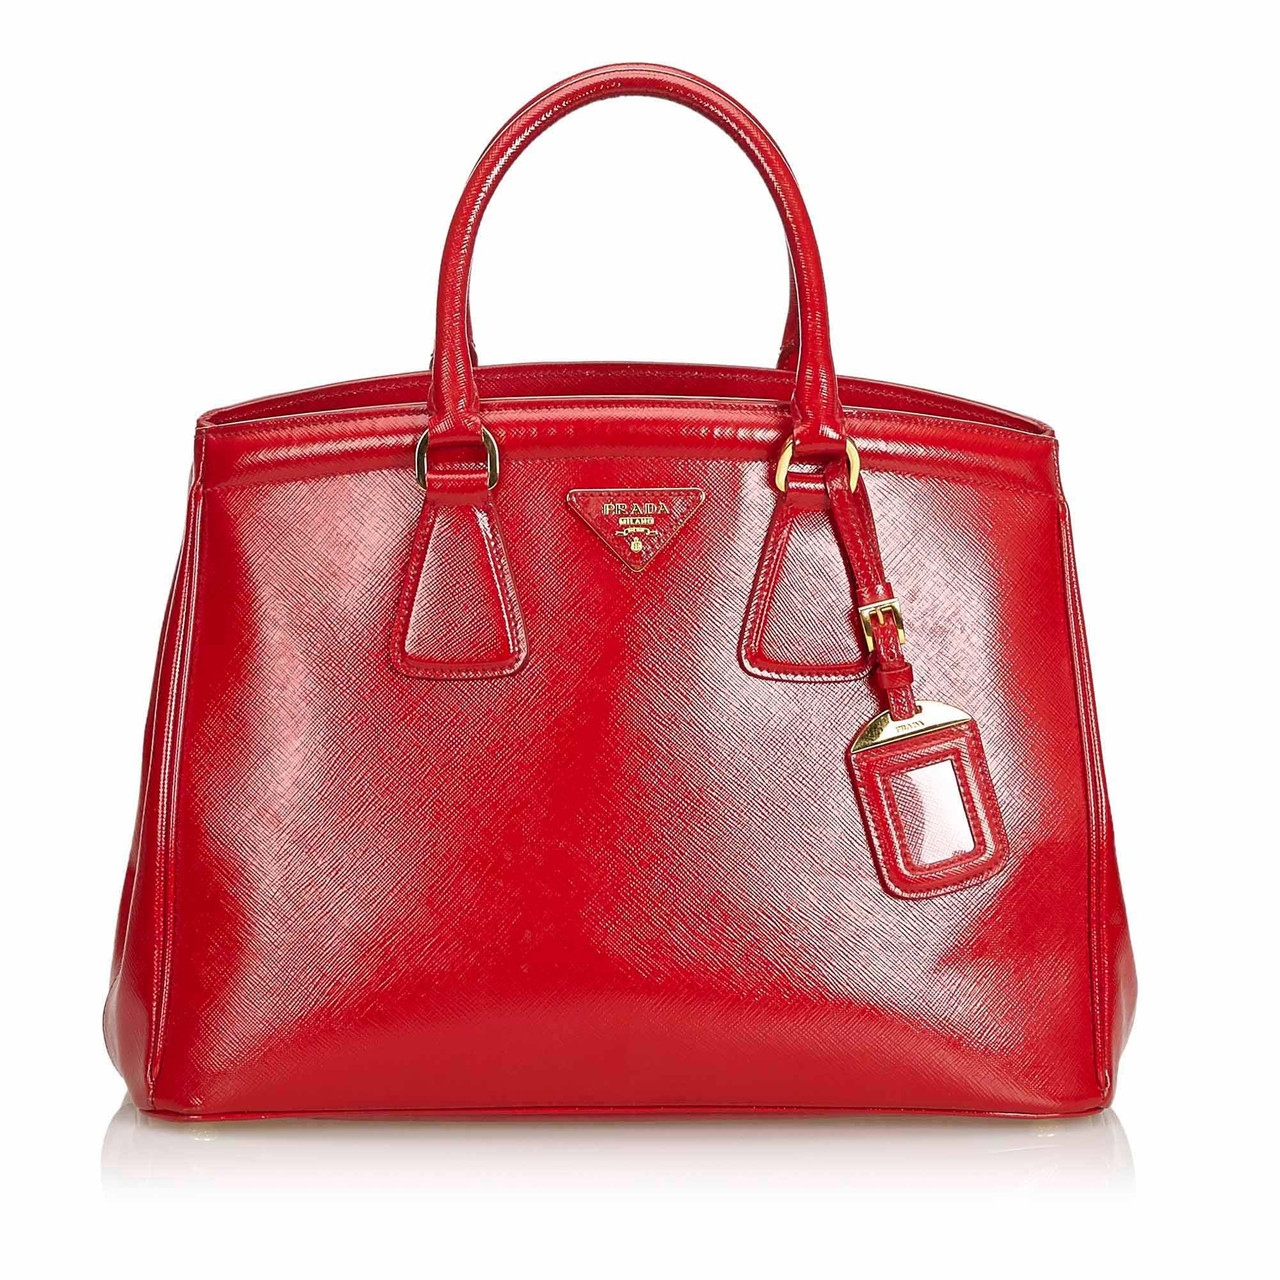 Red Leather Saffiano Lux Handbag Italy